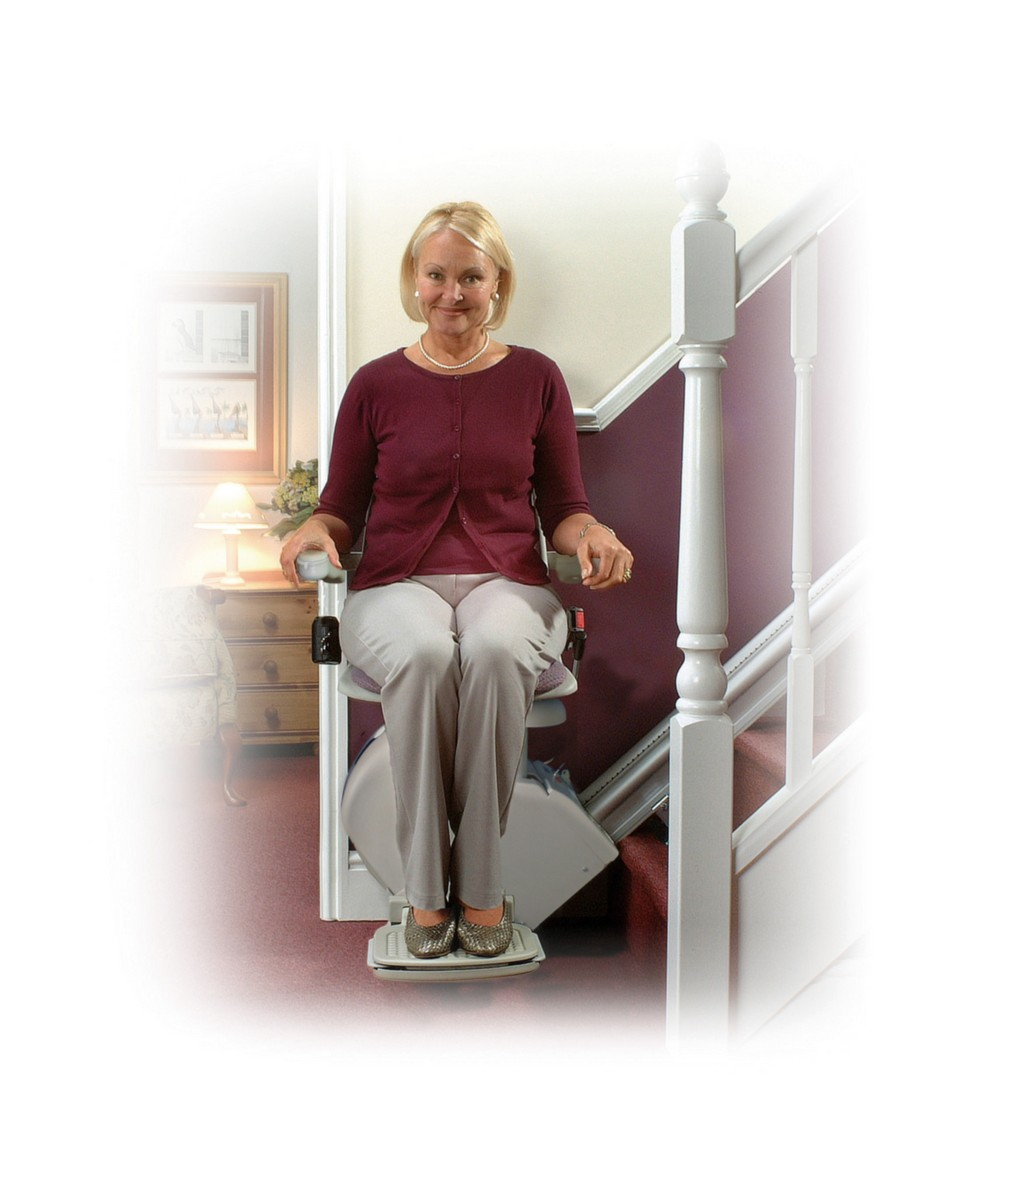 dover stair lifts, stair lift and stair width, bruno stair lift, acorn stairlifts orlando